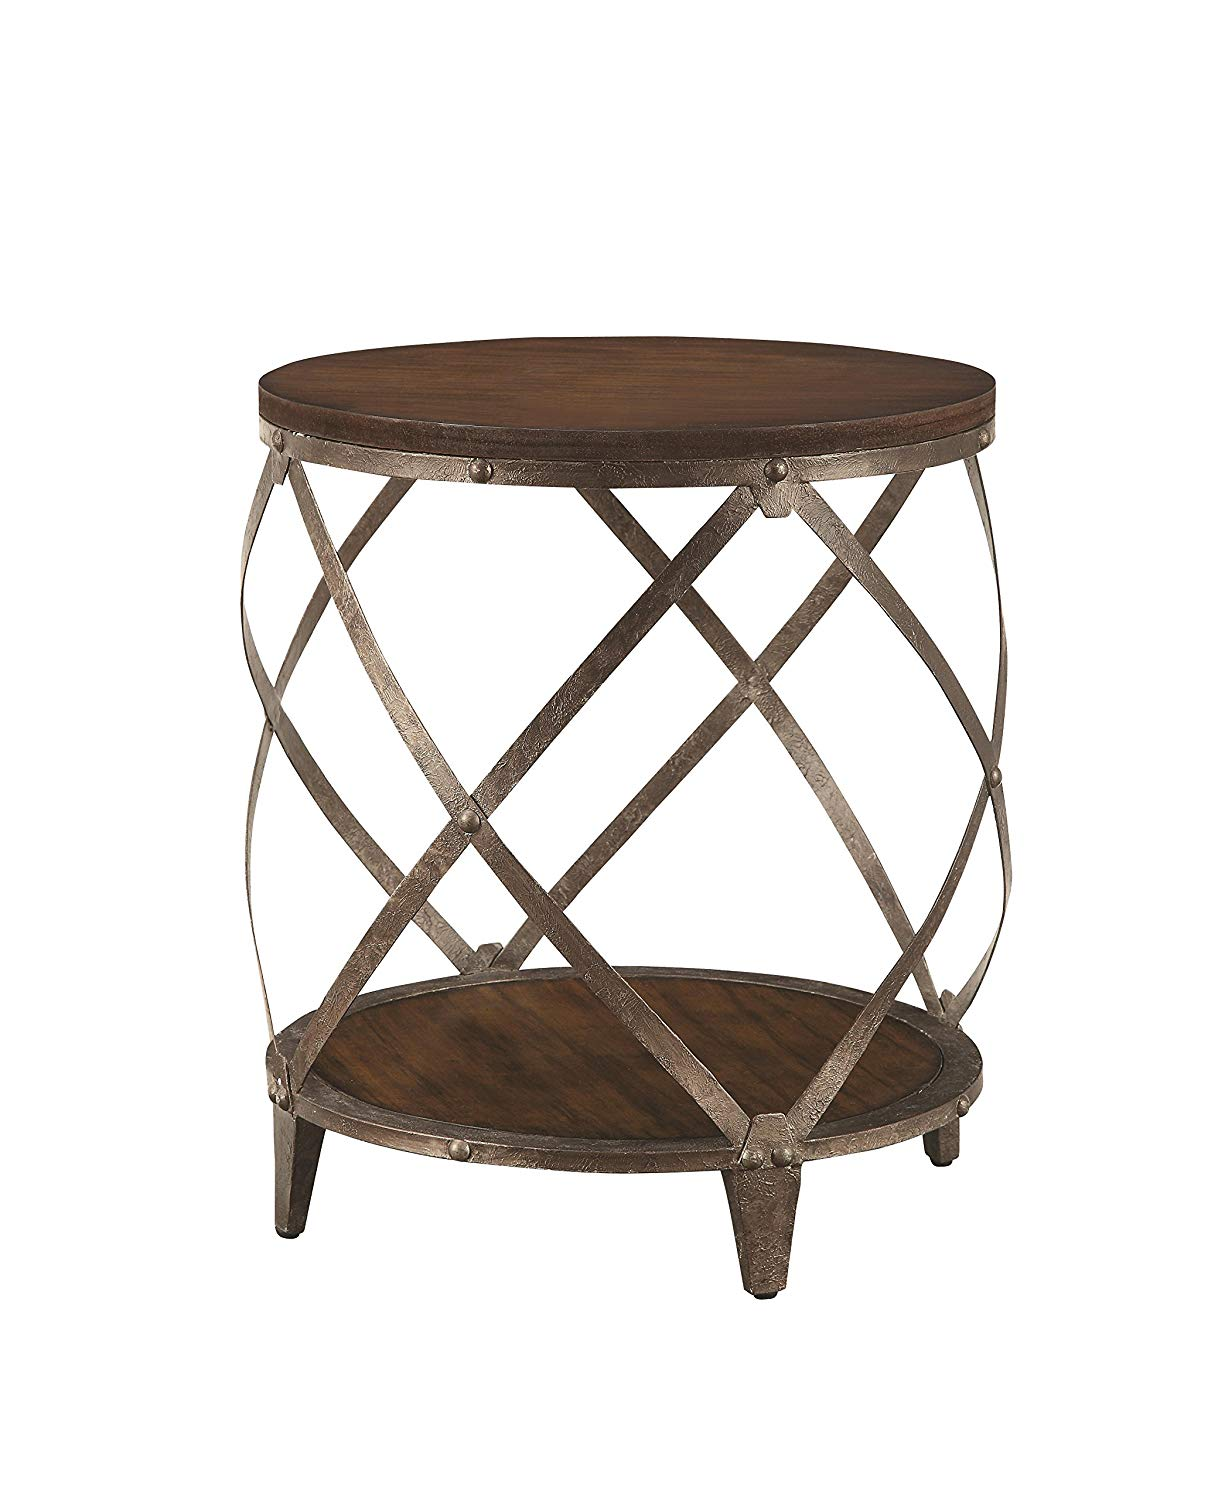 metal accent table with drum shape brown kitchen dining side white marble glass top nesting tables ceramic outdoor end aluminium furniture room sets lobby sofa console iron